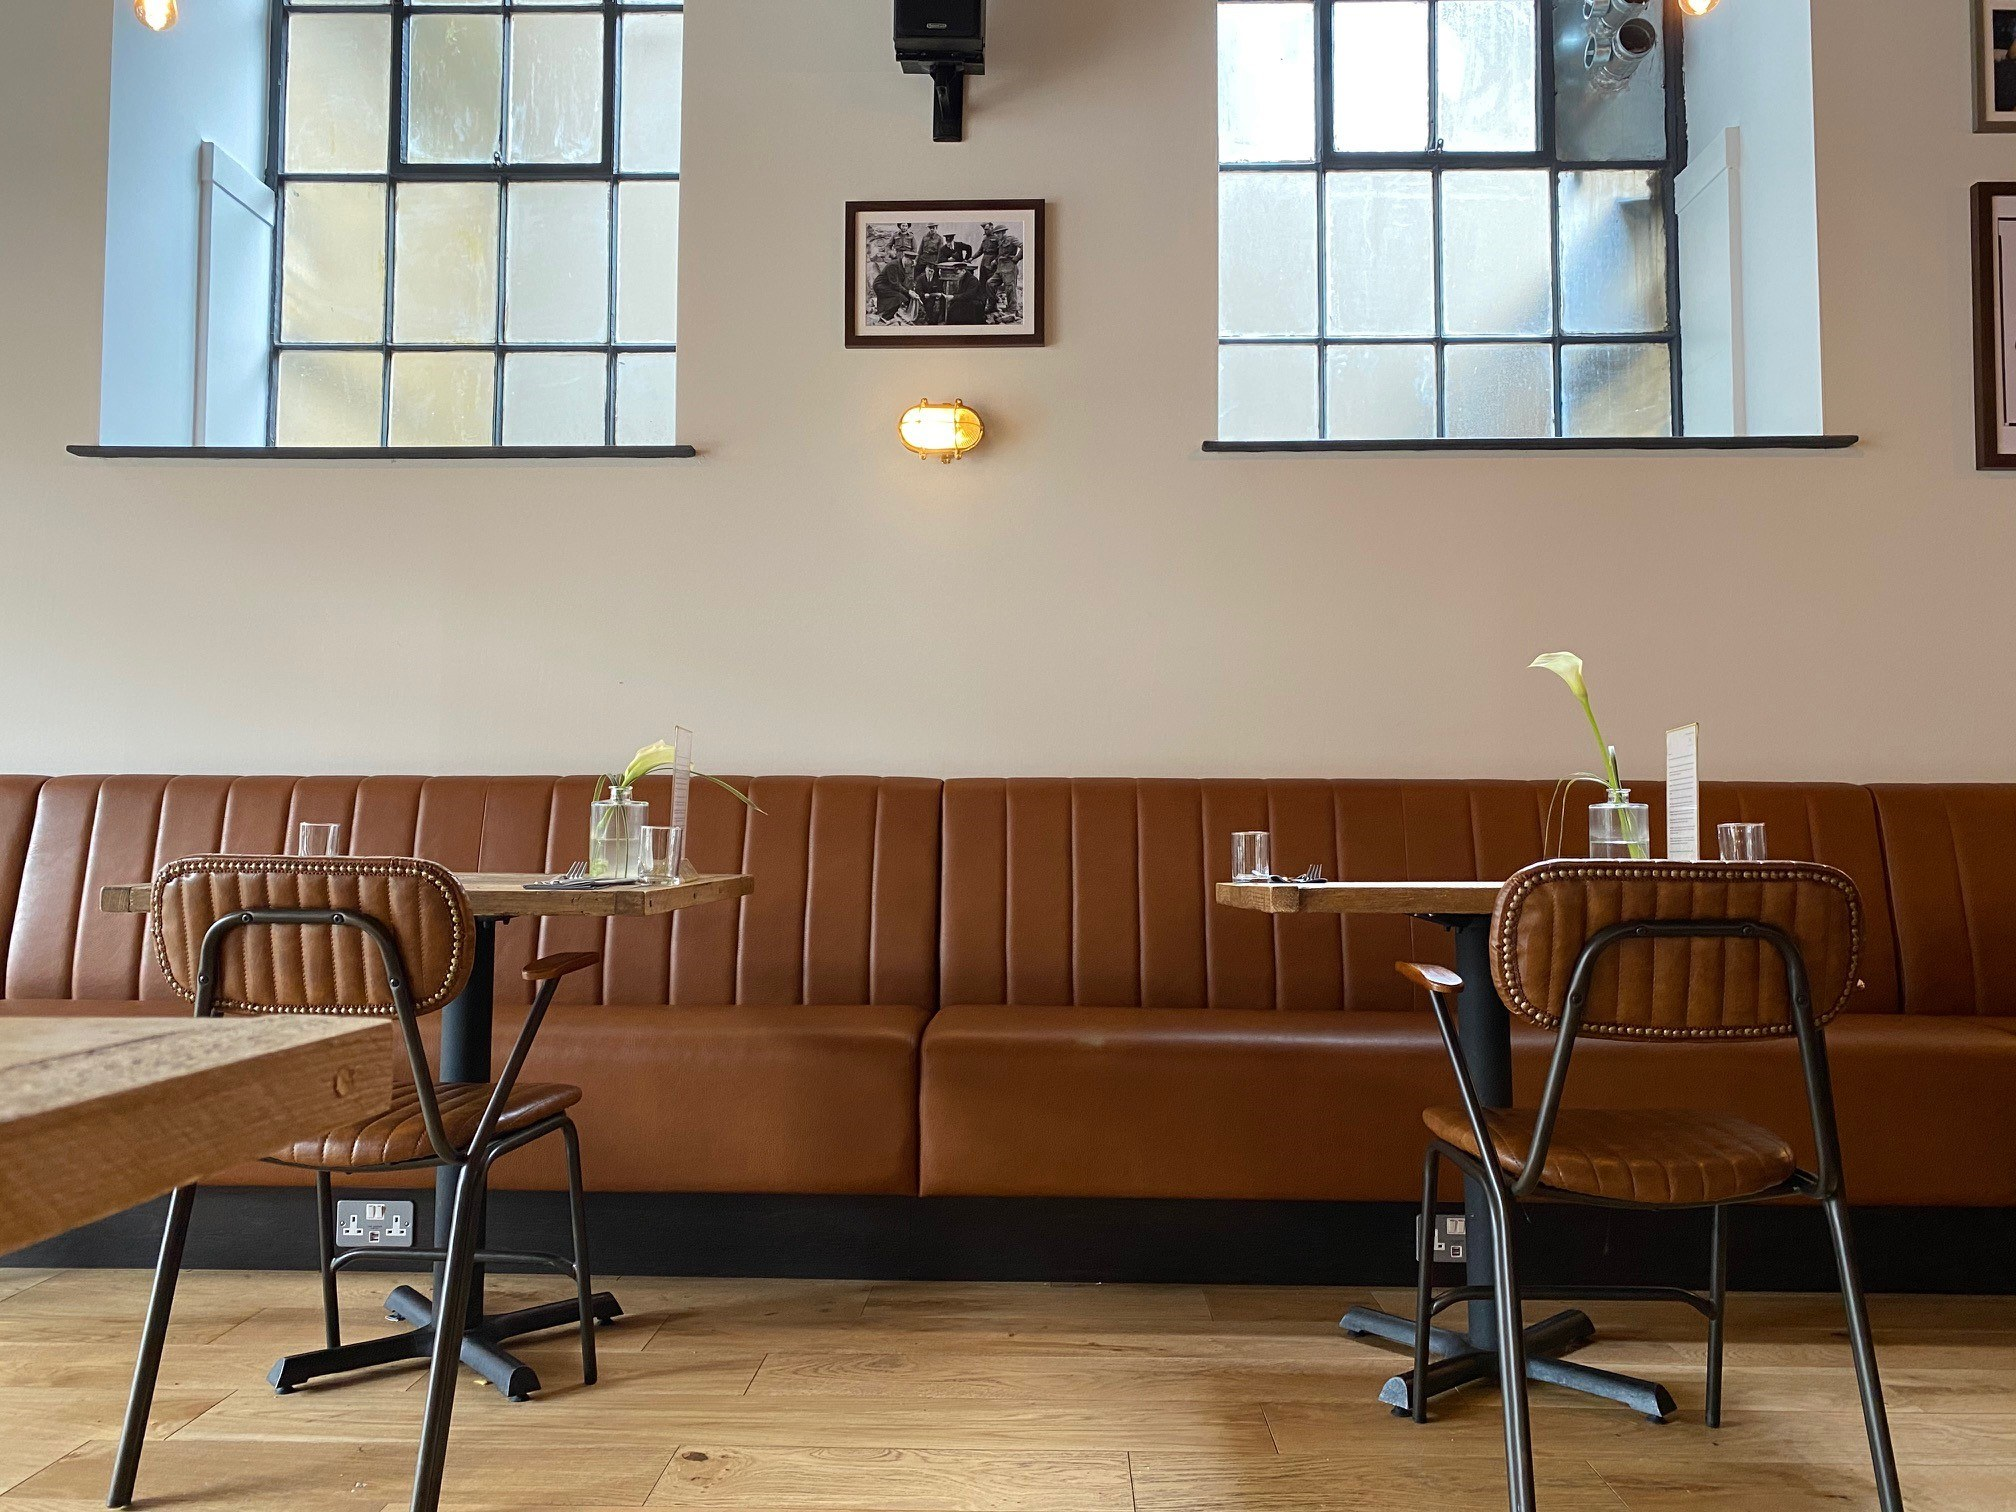 Banquette Restaurant Seating | Fluted Back | Tanned Faux Leather